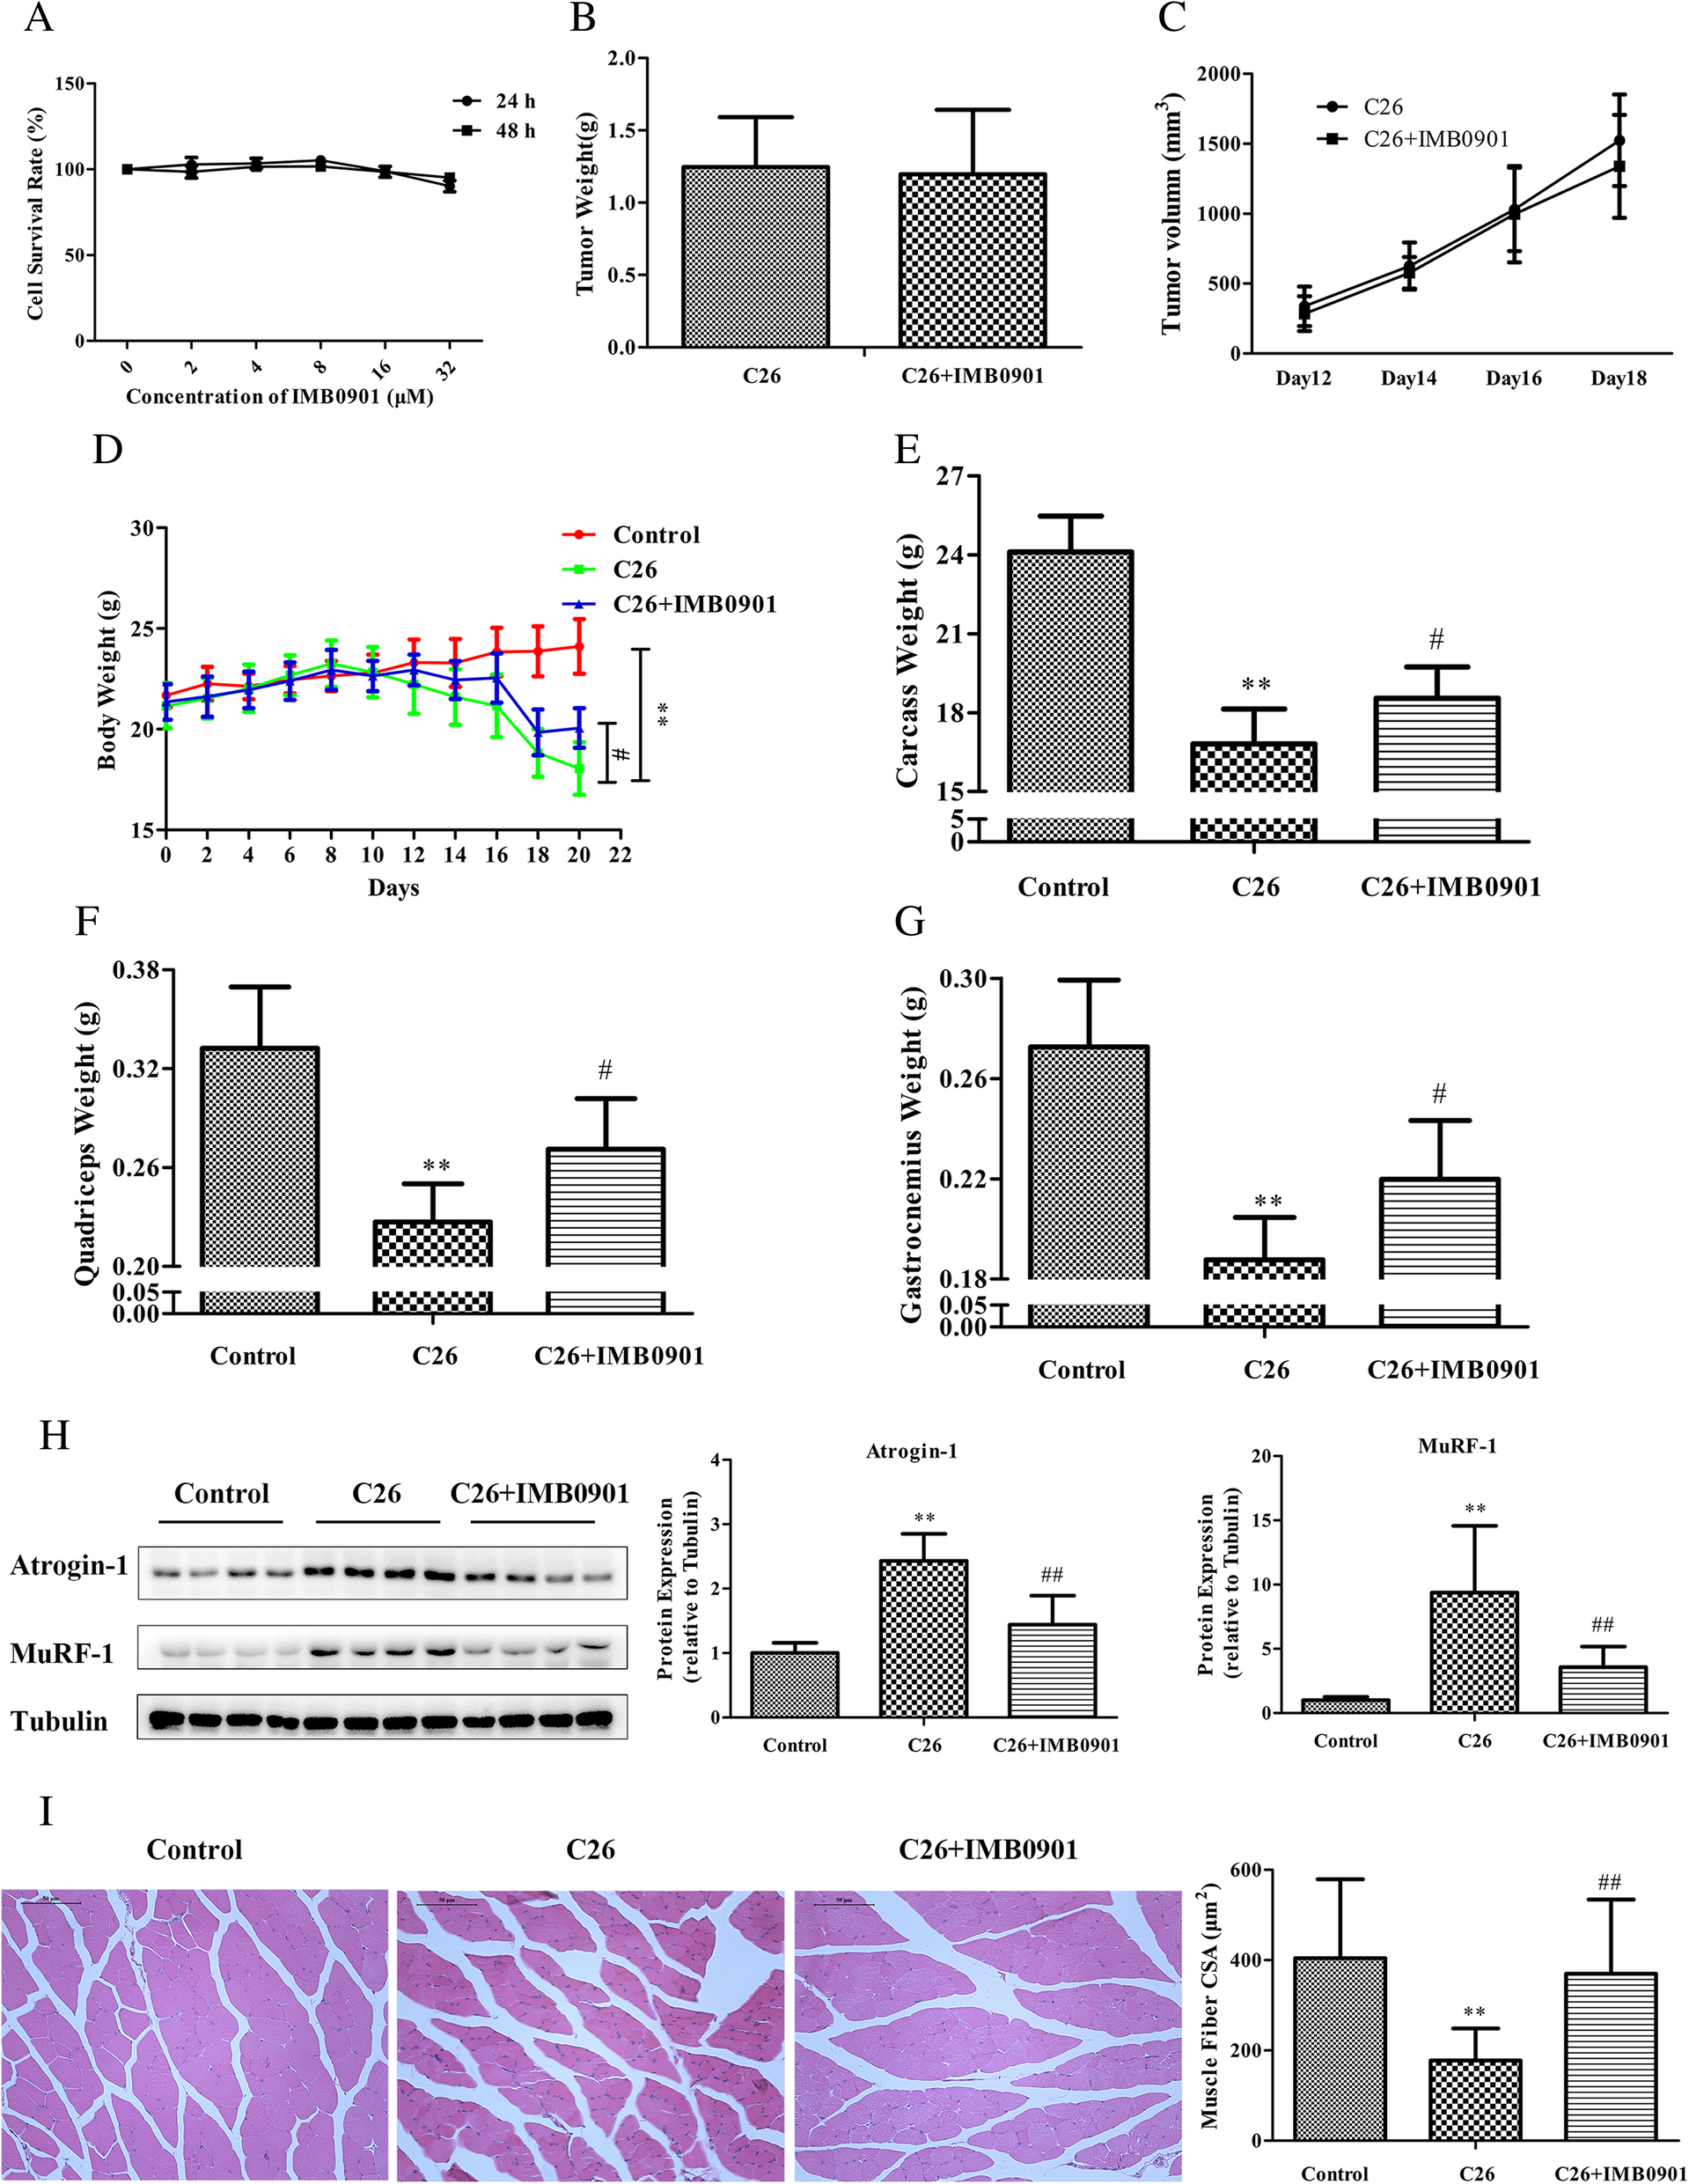 IMB0901 inhibits muscle atrophy induced by cancer cachexia